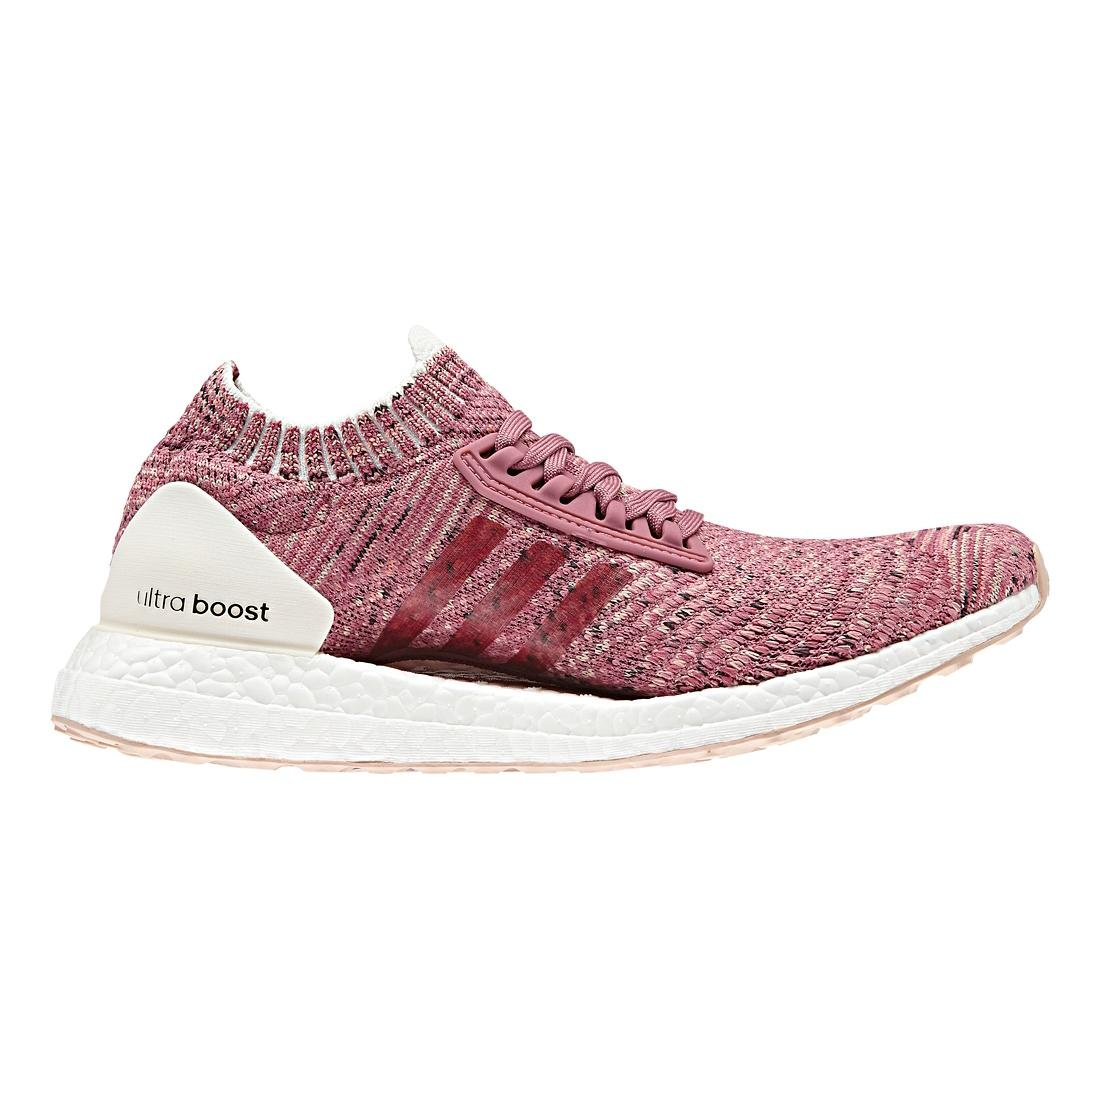 Trace Maroon 37.5 EU adidas Femmes Chaussures Athlétiques